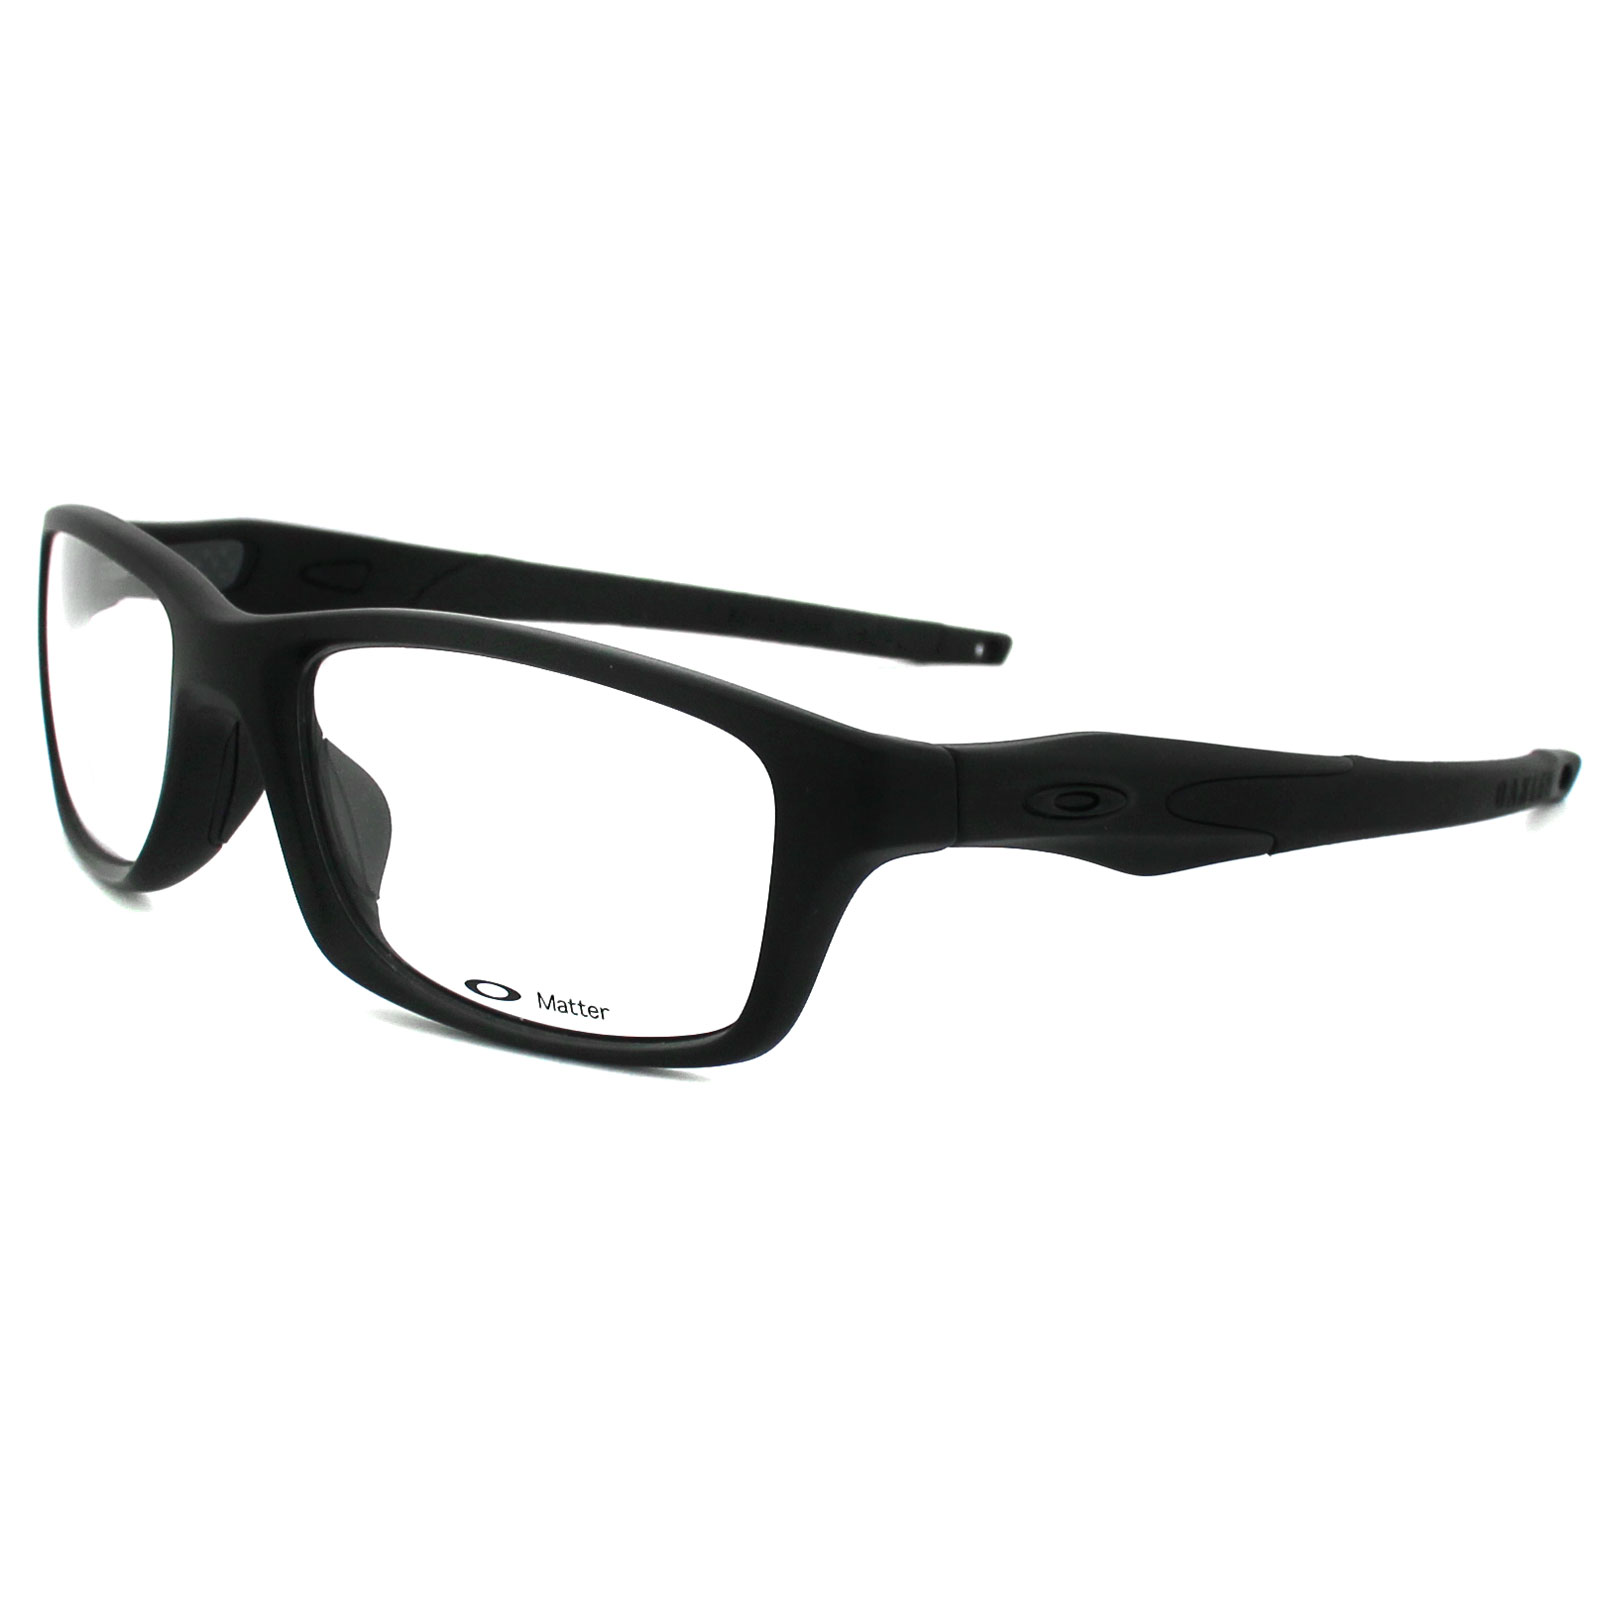 Oakley Glasses Prices